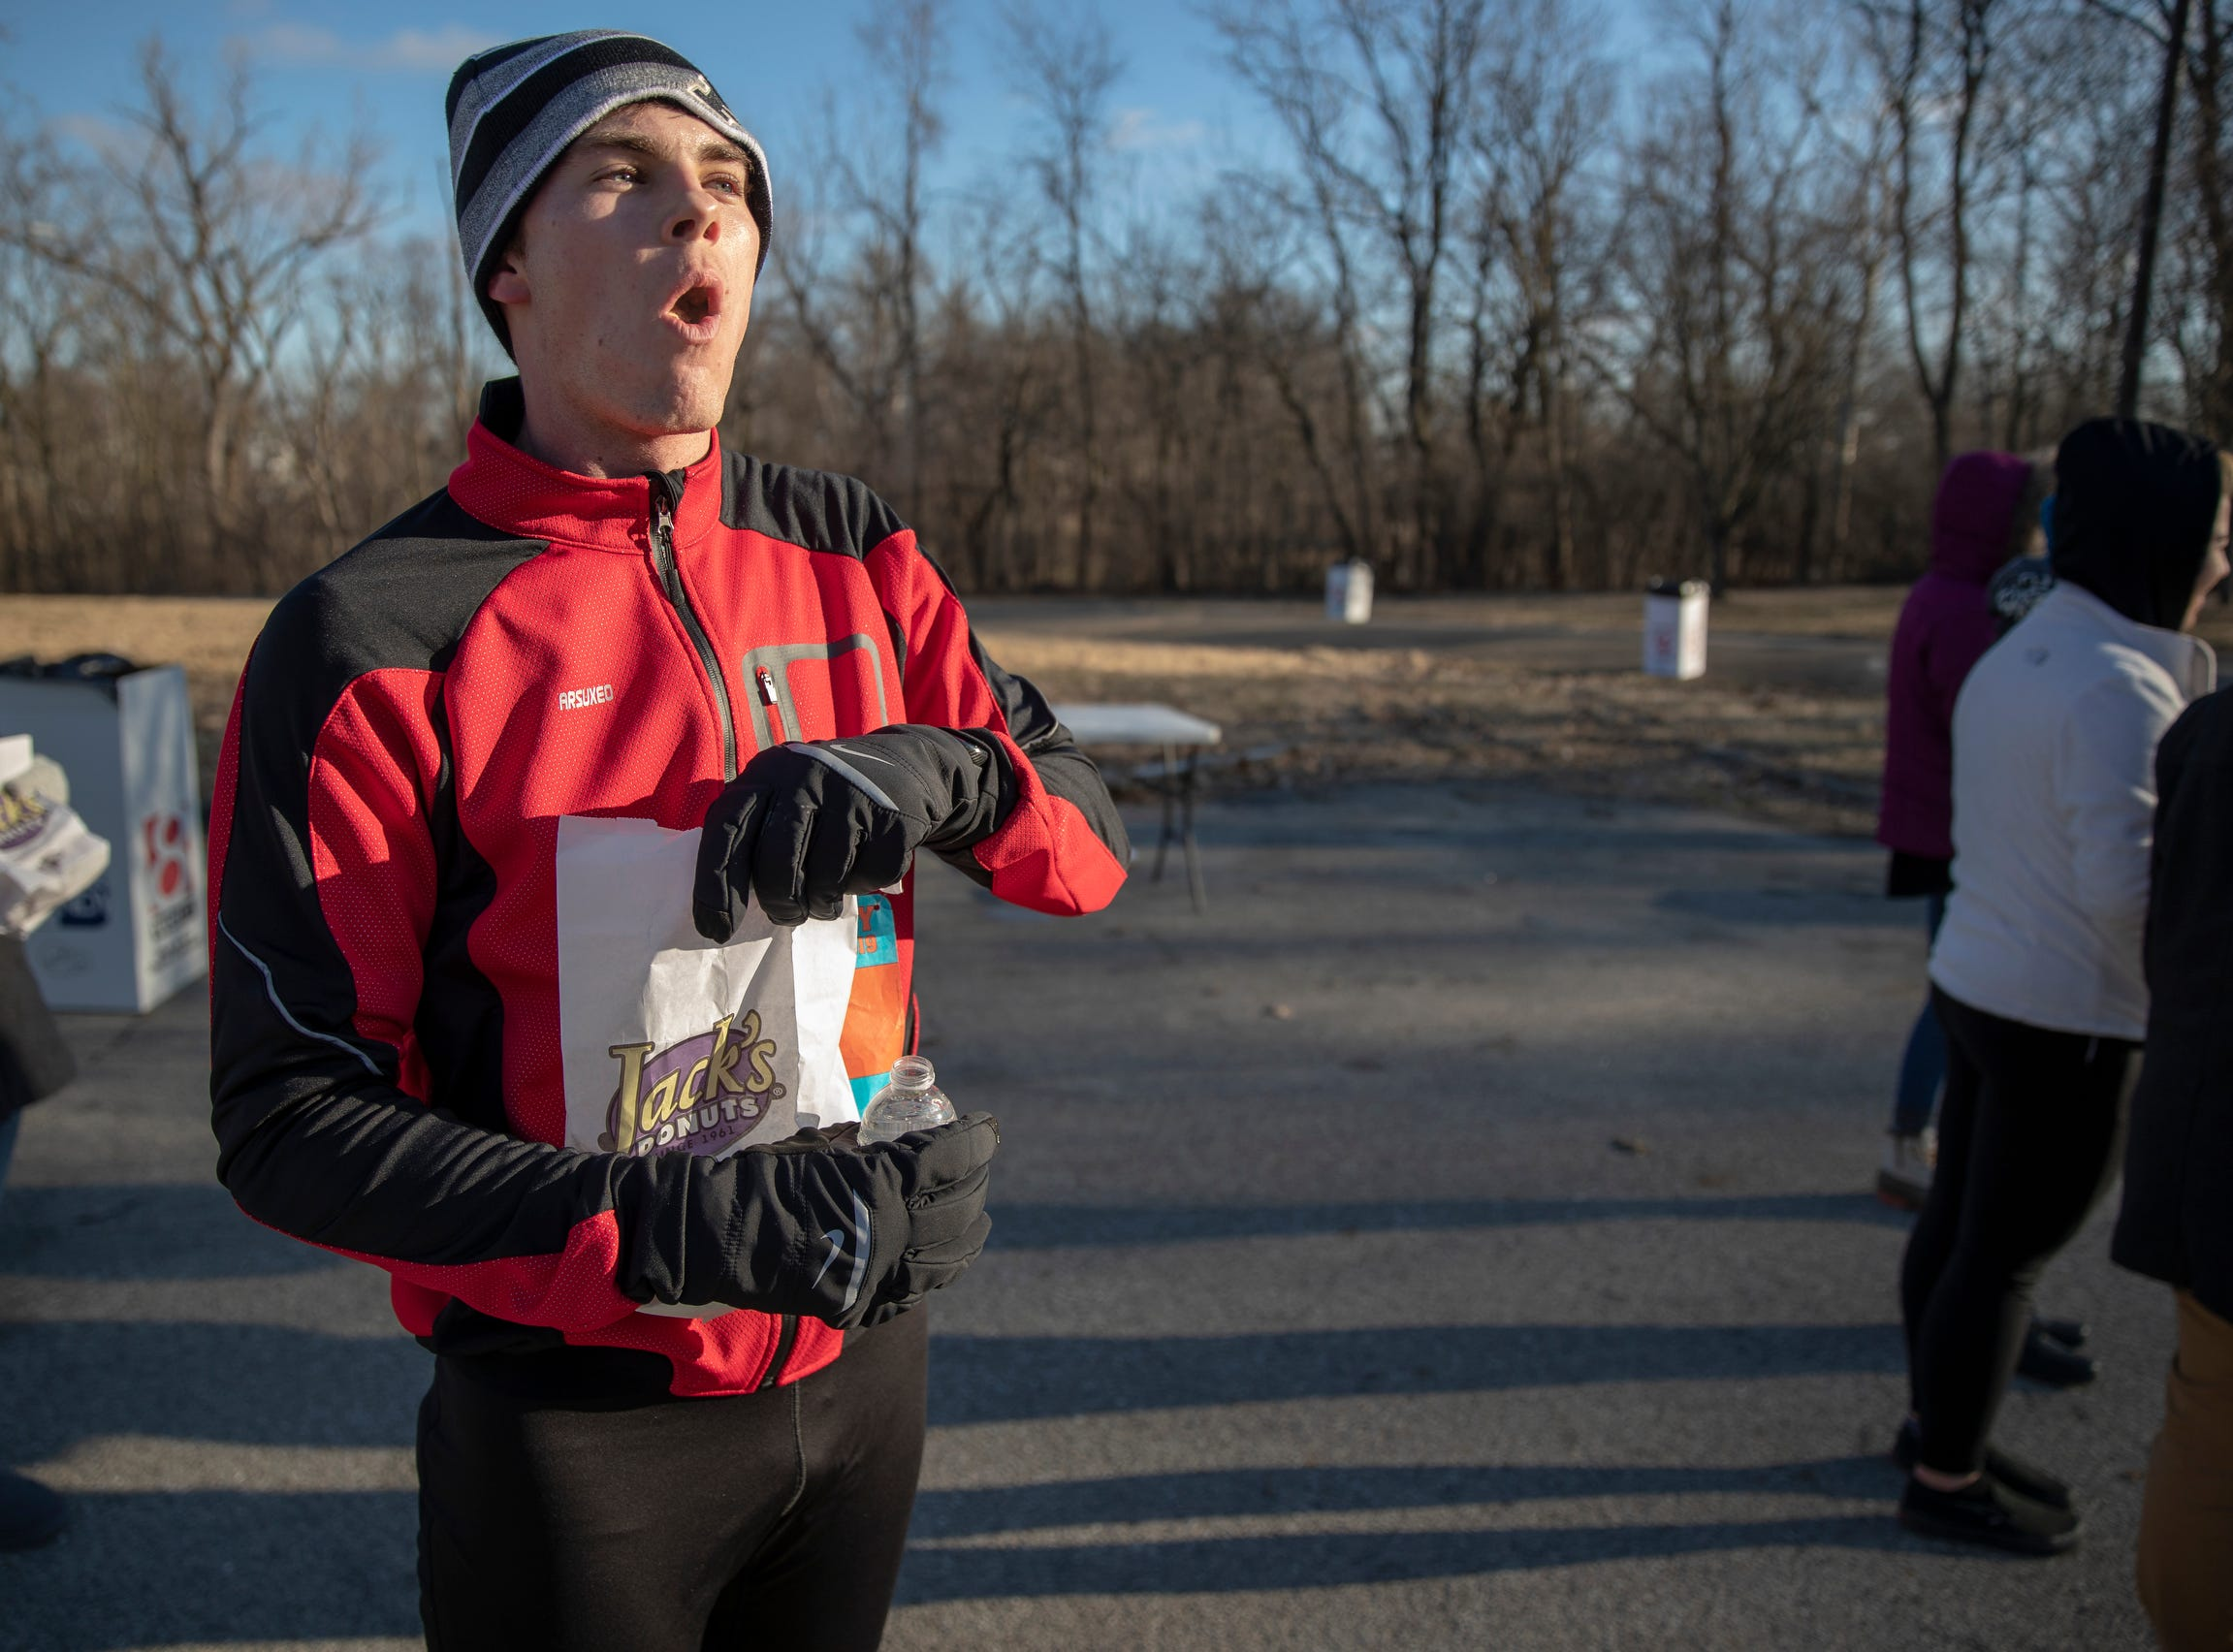 Andrew Cartwright, who won the the Circle City Donut Dash 5k with a time of 19.52, gobbles down pastry during a five kilometer race that benefits Teachers' Treasures, Indianapolis, Saturday, Feb. 16, 2019. The race invites willing runners to eat a dozen doughnut holes at the halfway point in the event that helps provide school supplies for area school kids.